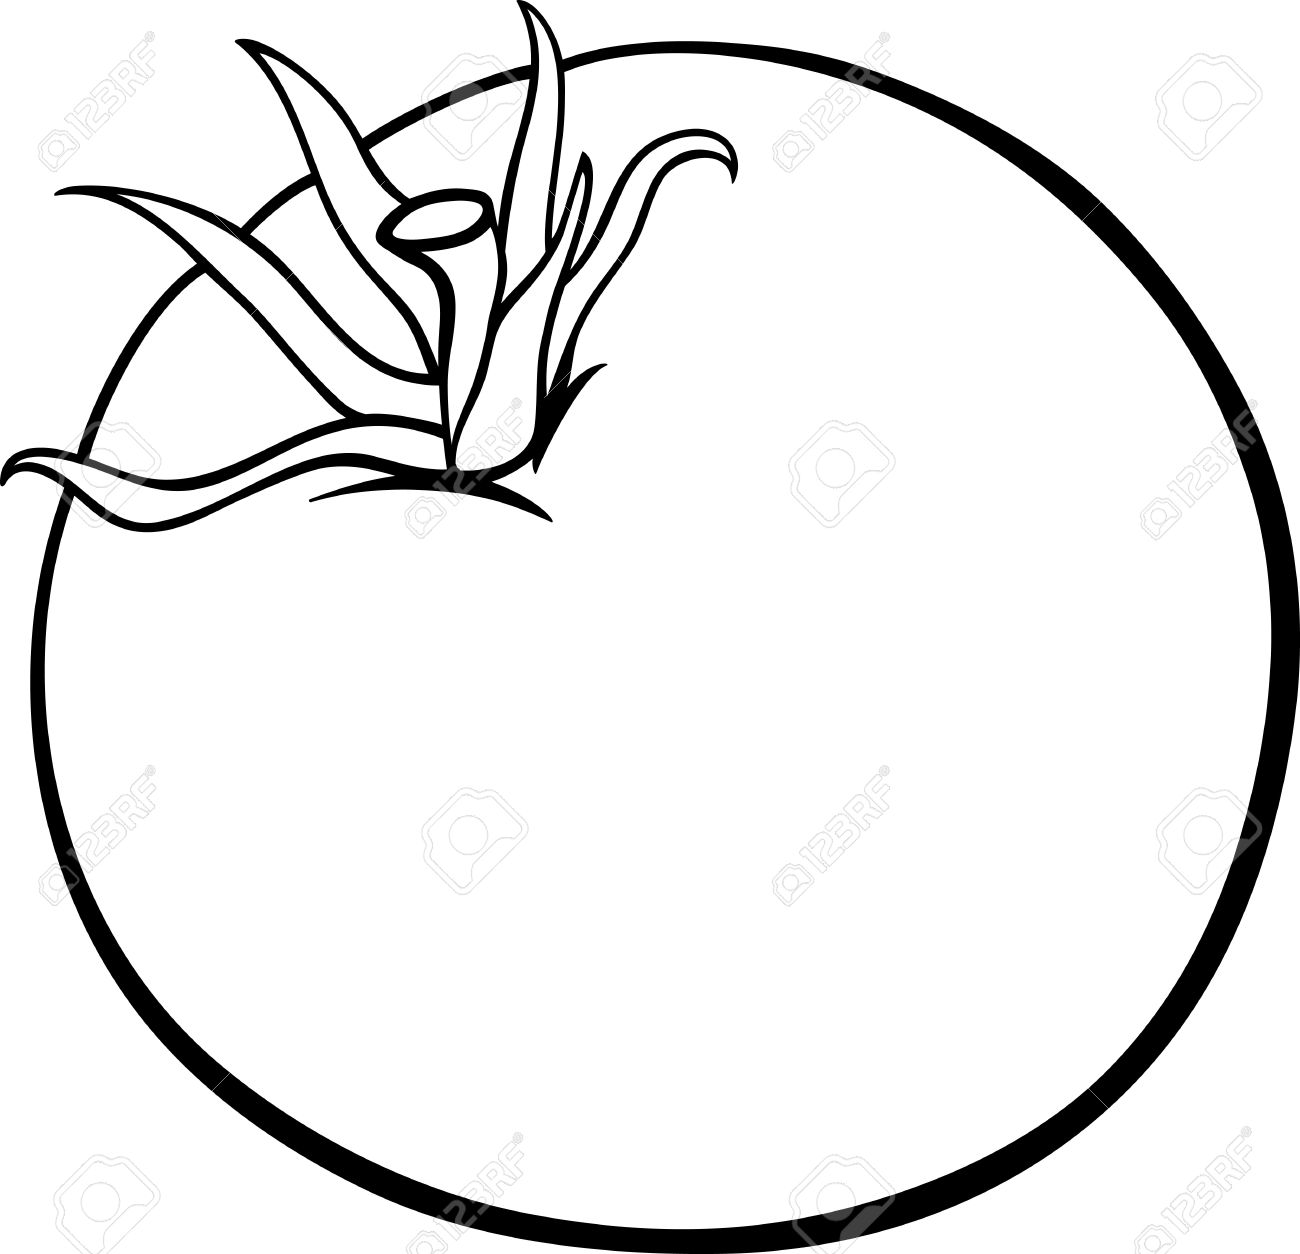 Tomato Drawing Pictures